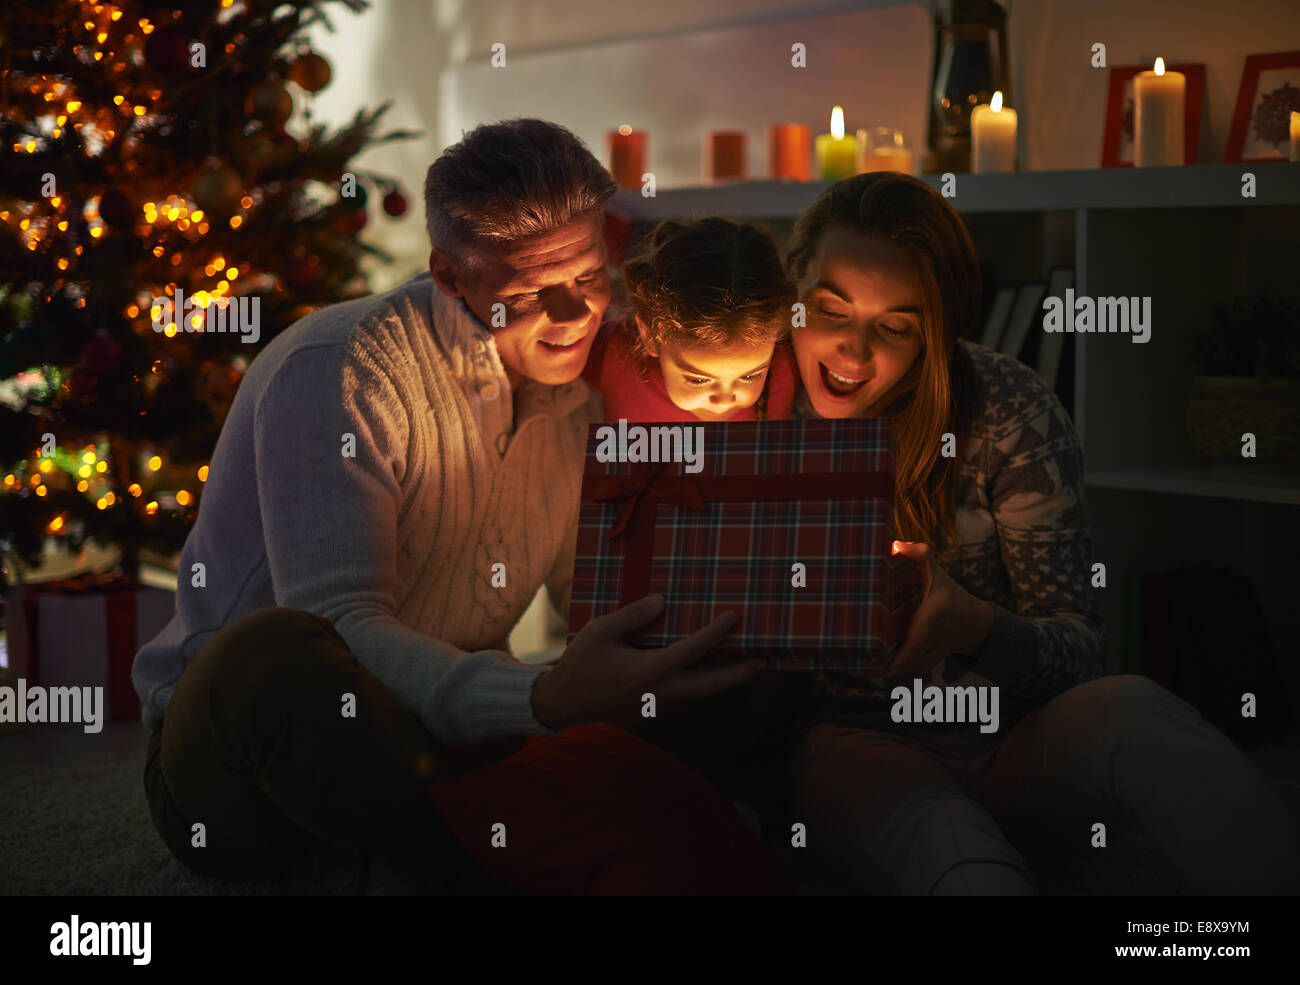 Happy family of three looking into open giftbox on Christmas night - Stock Image